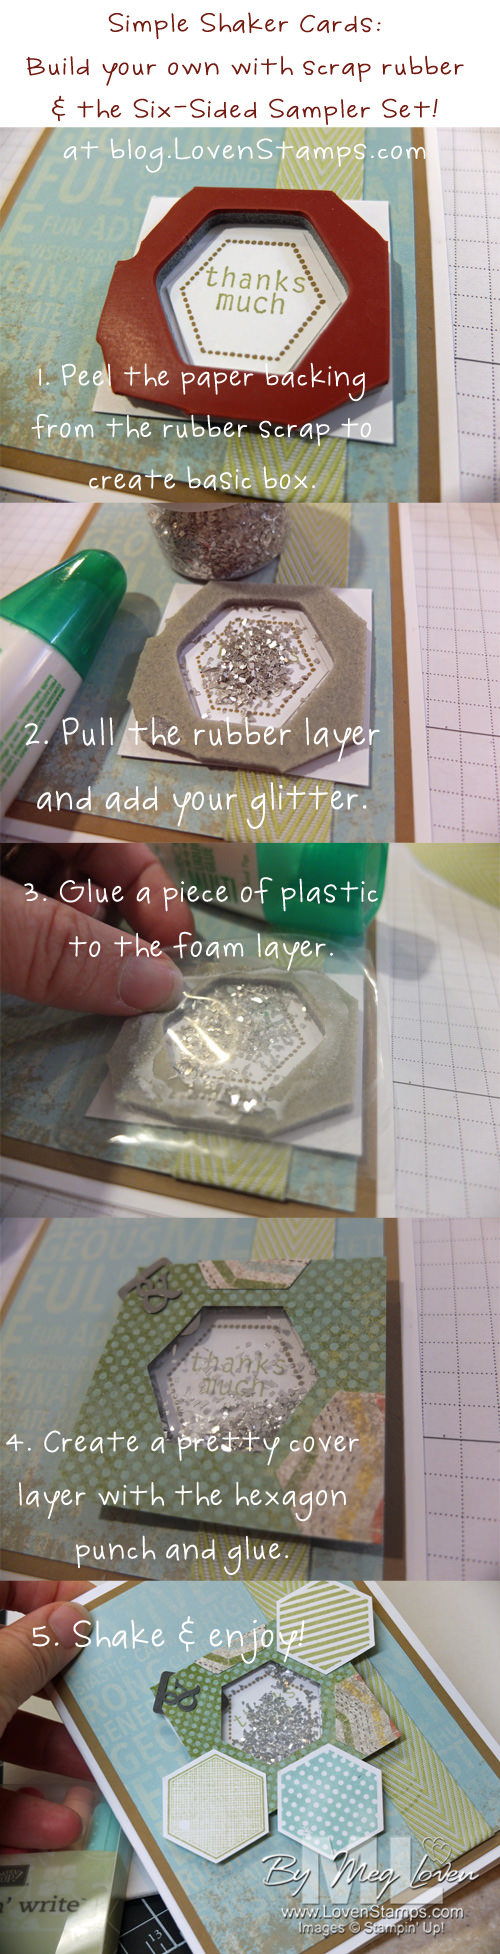 Six-Sided Sampler and the Hexagon Punch: Easy Shaker Card Tutorial free at blog.LovenStamps.com